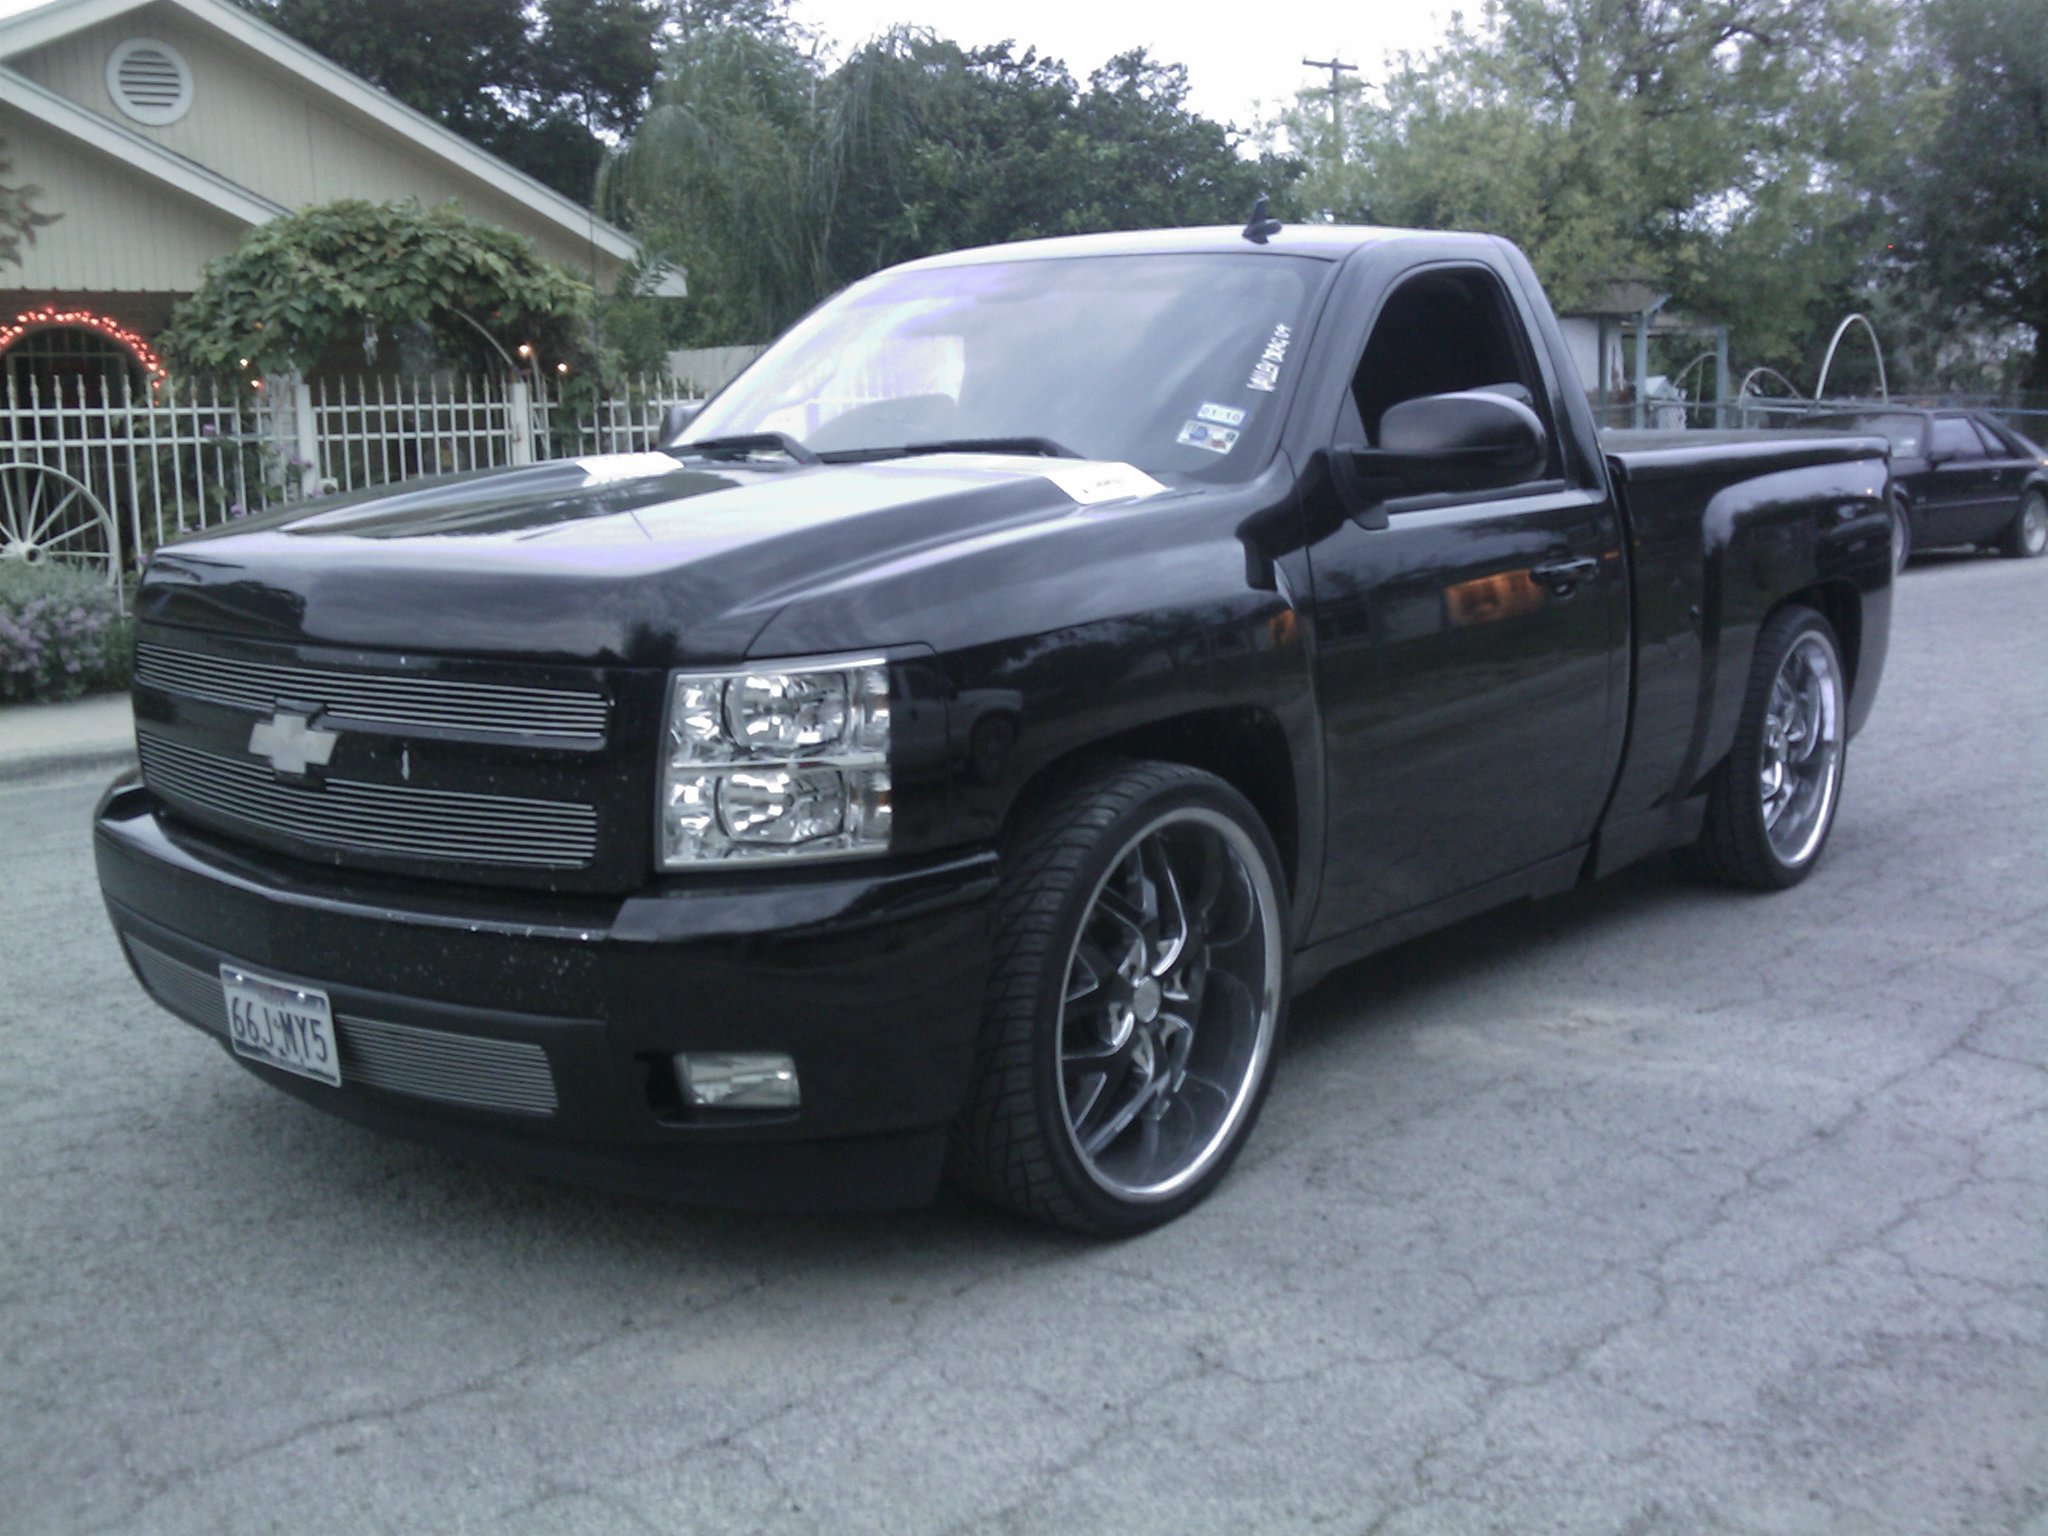 xxkrazy8ballxx 39 s 2007 chevrolet silverado 1500 regular cab. Black Bedroom Furniture Sets. Home Design Ideas